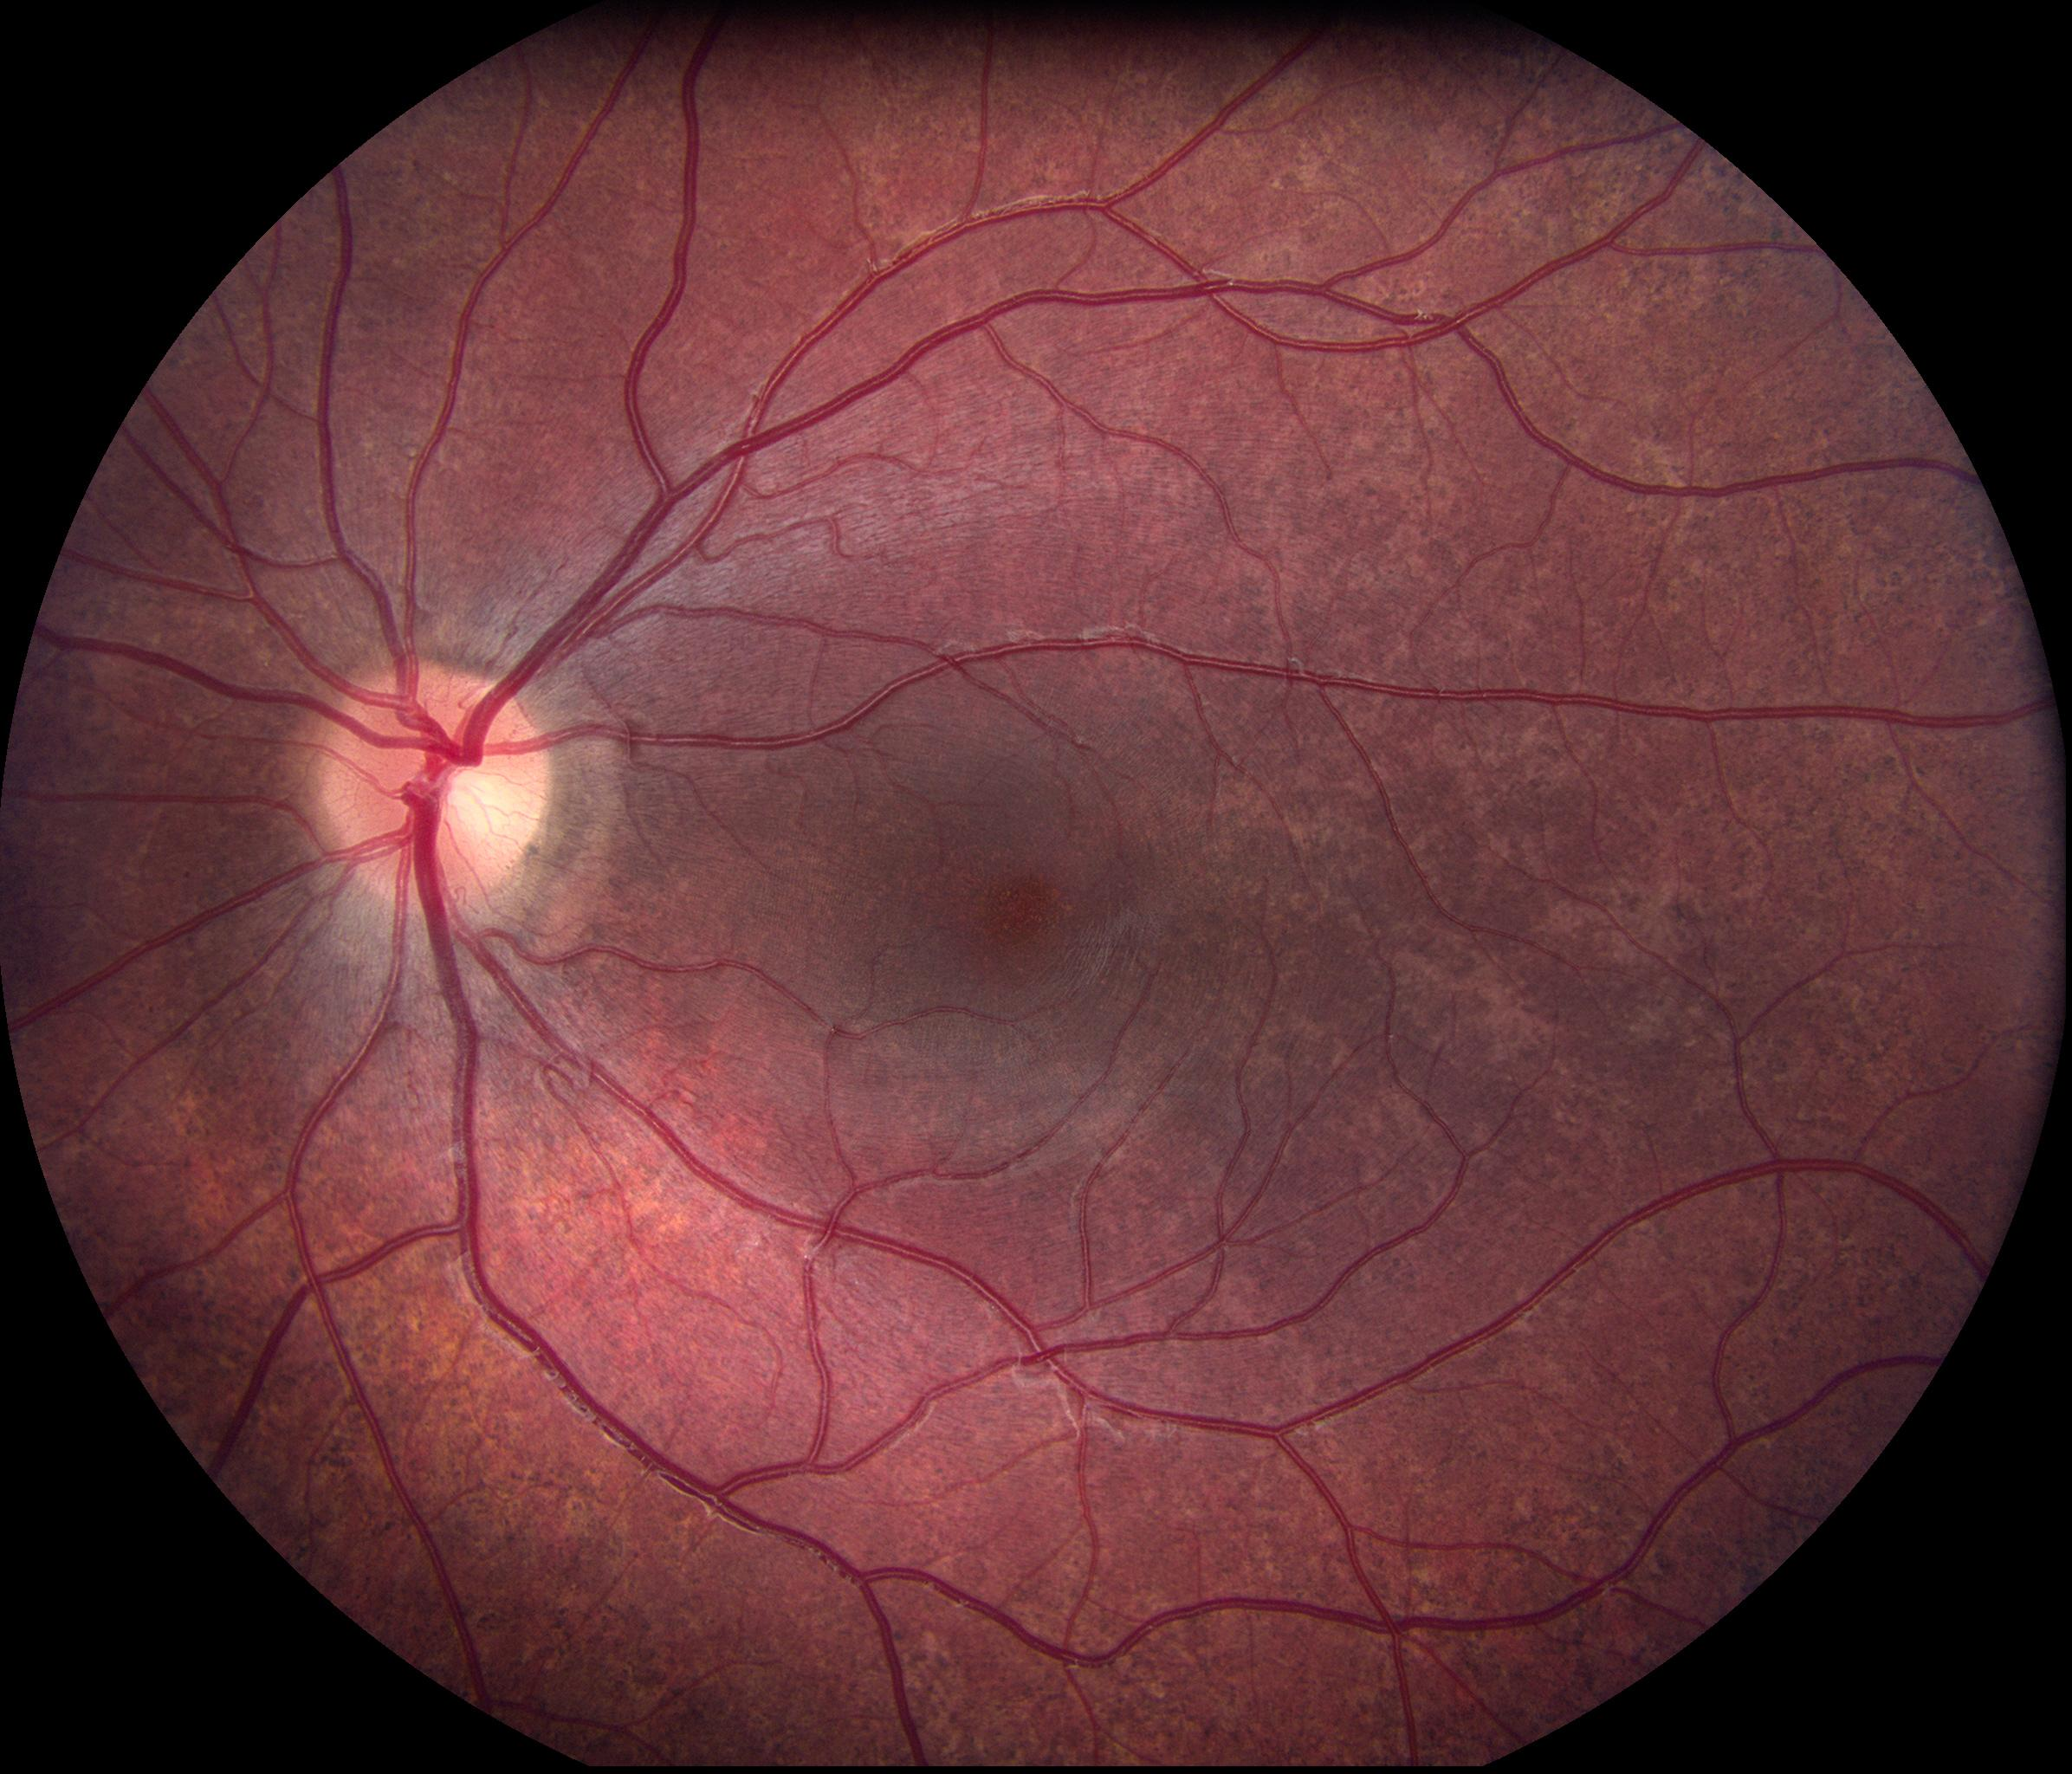 Figure 3: Fundus Photo